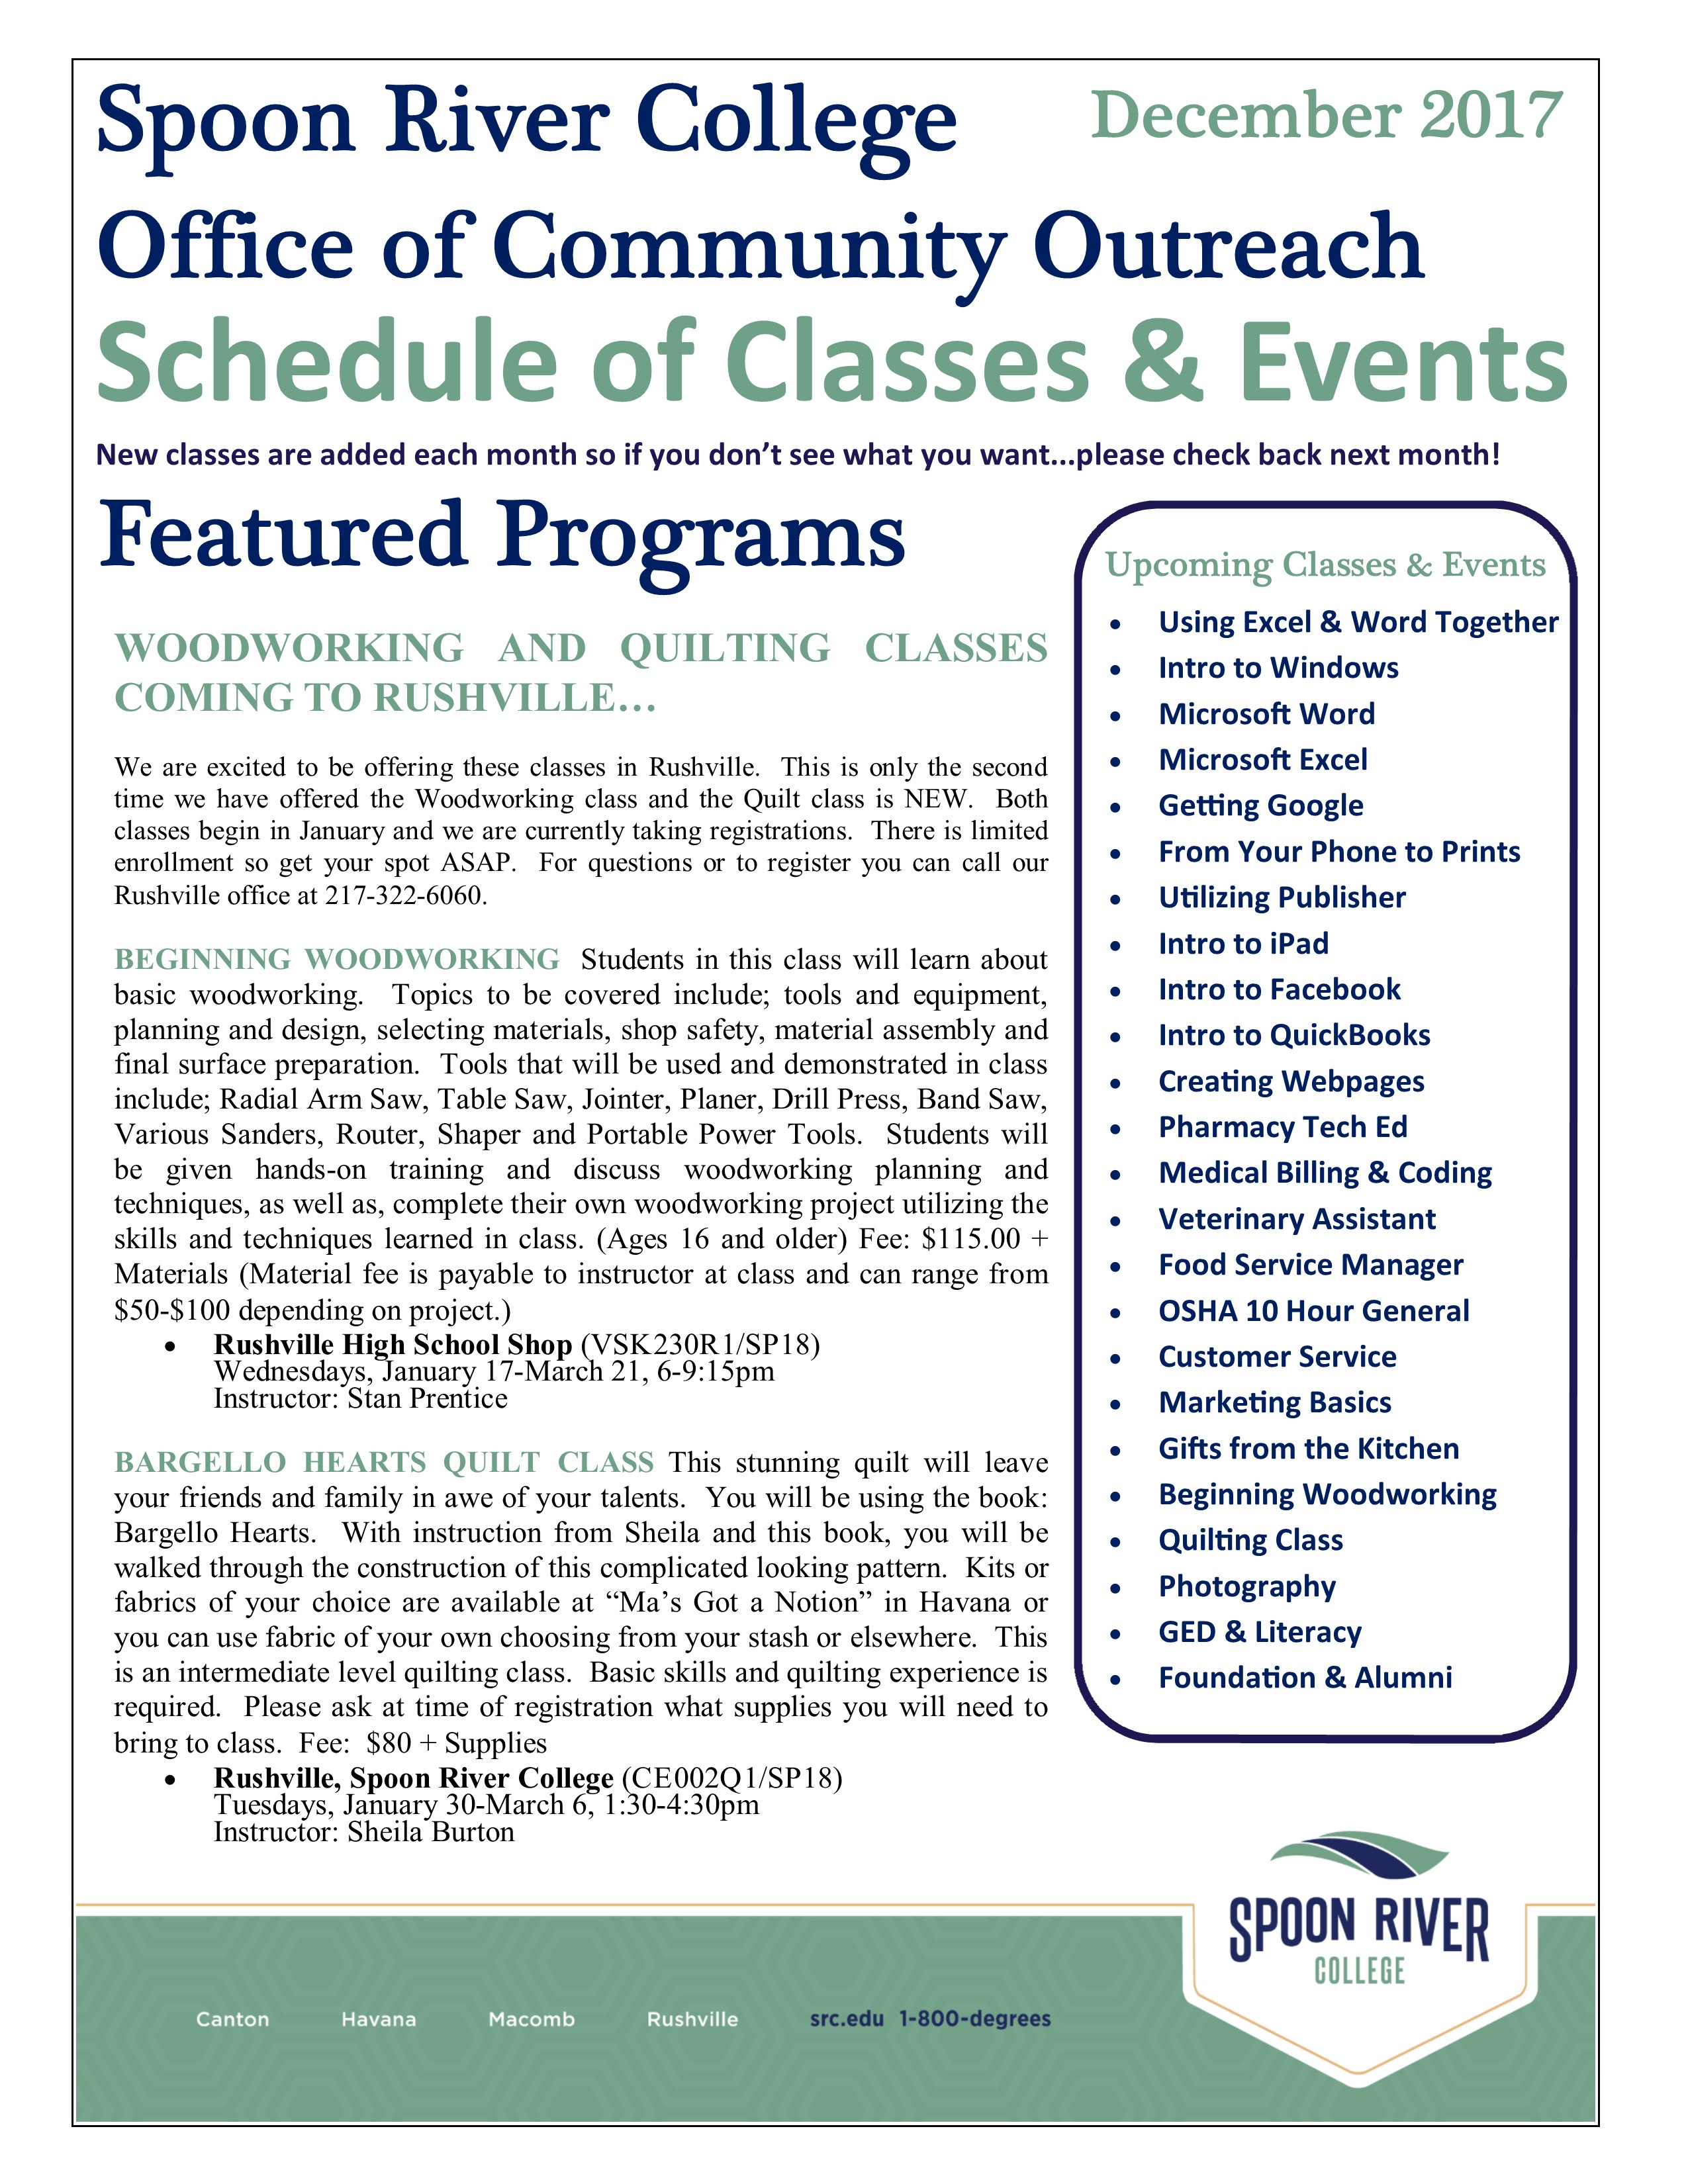 Awesome image of medical billing and coding certificate business classes events from medical billing and coding certificate image source src xflitez Image collections